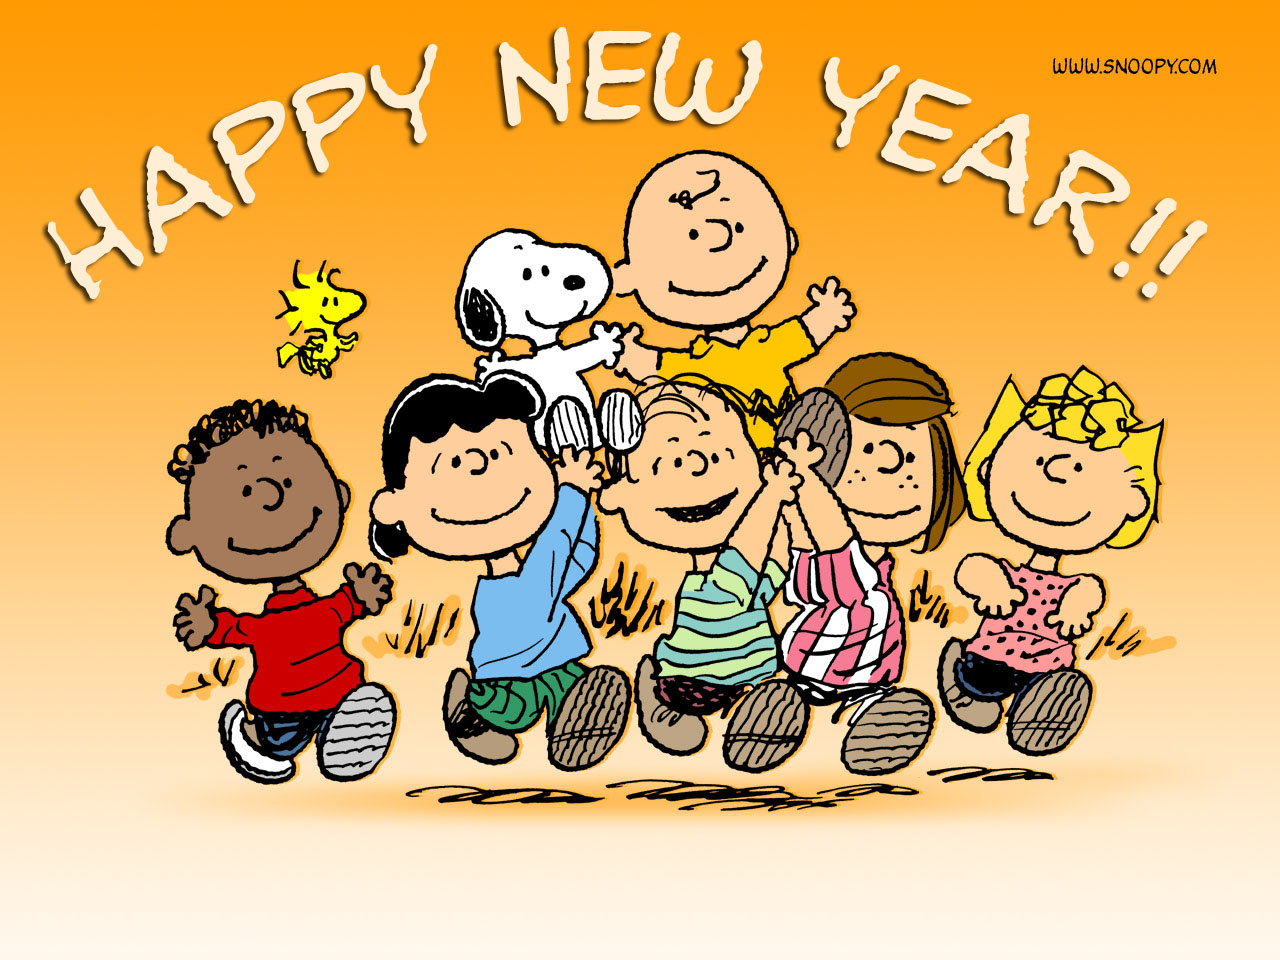 new year sms 2012 free sms sms message love sms funny sms sms text . 1280 x 960.Funny Happy New Year Gif